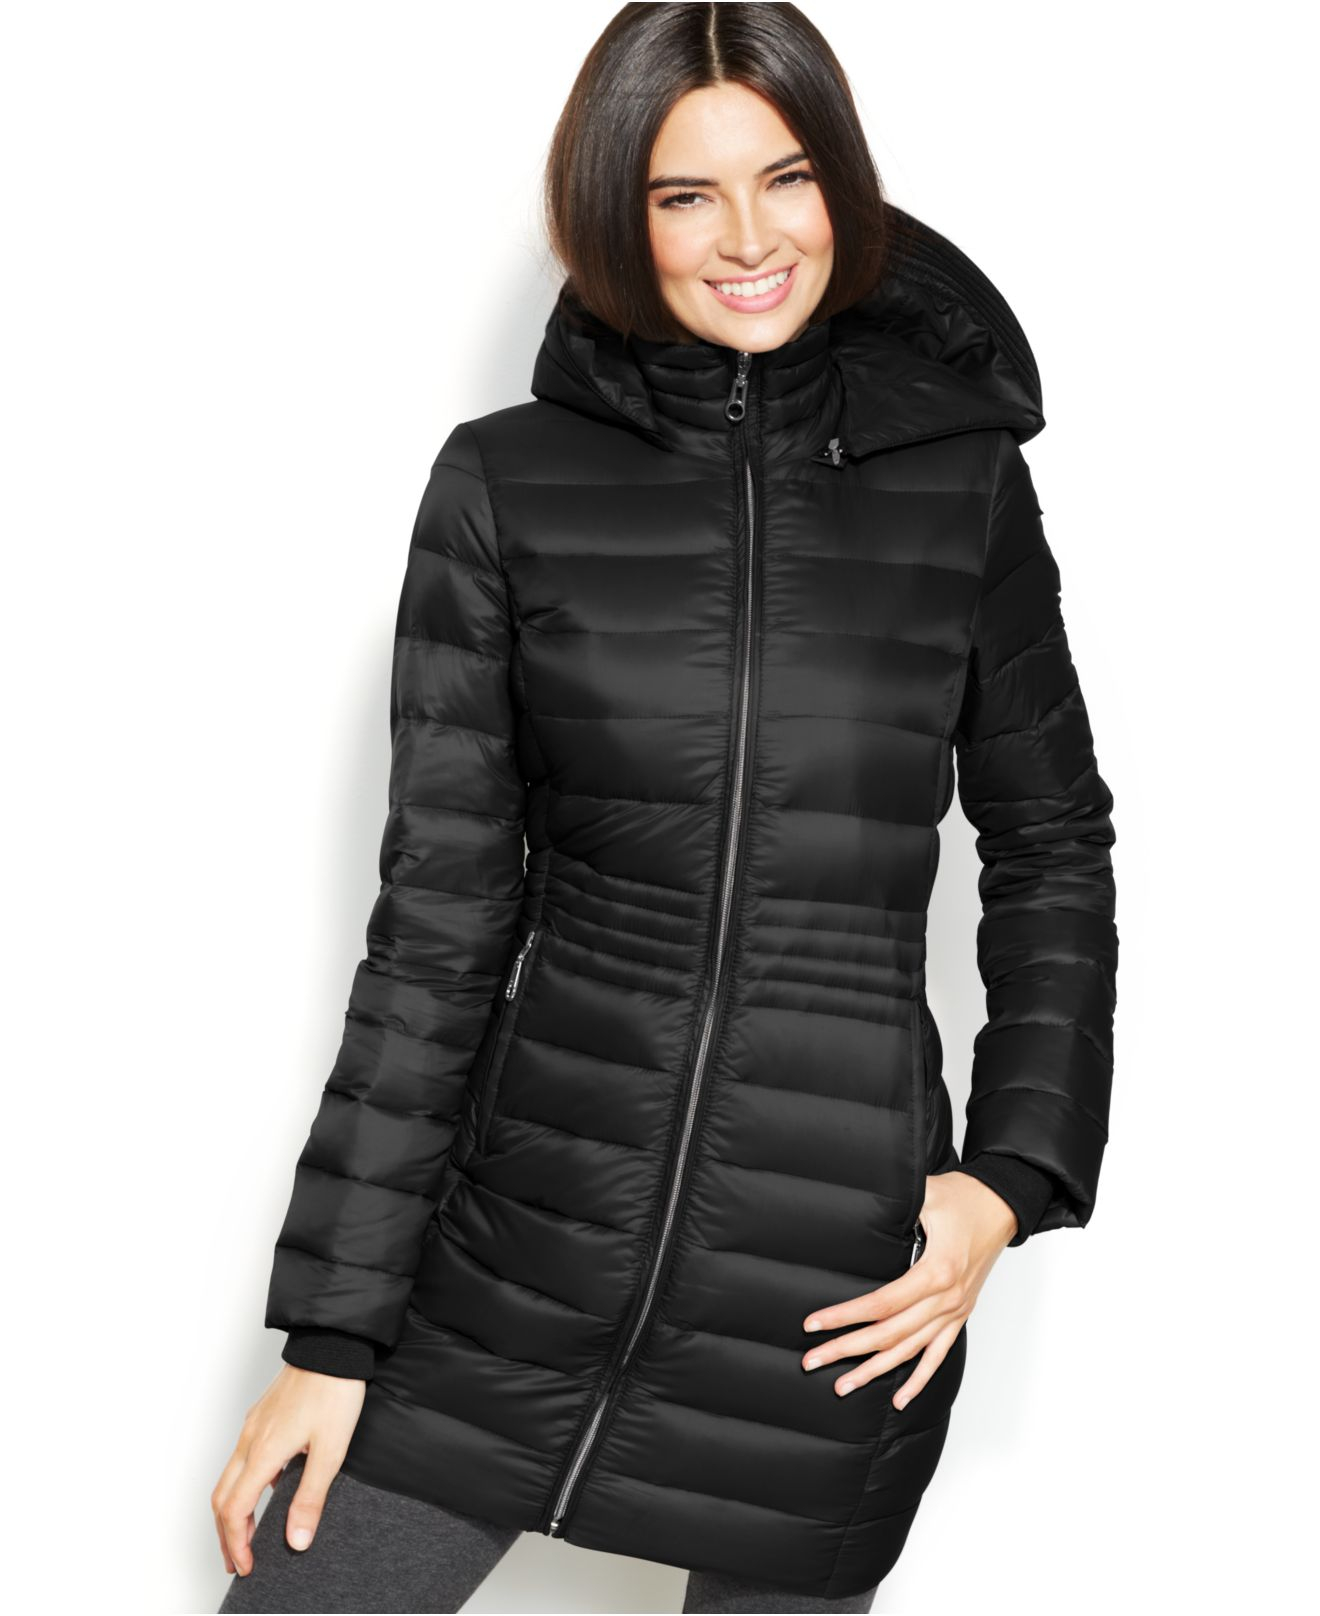 9df3be36f Lyst - INC International Concepts Hooded Quilted Packable Down ...